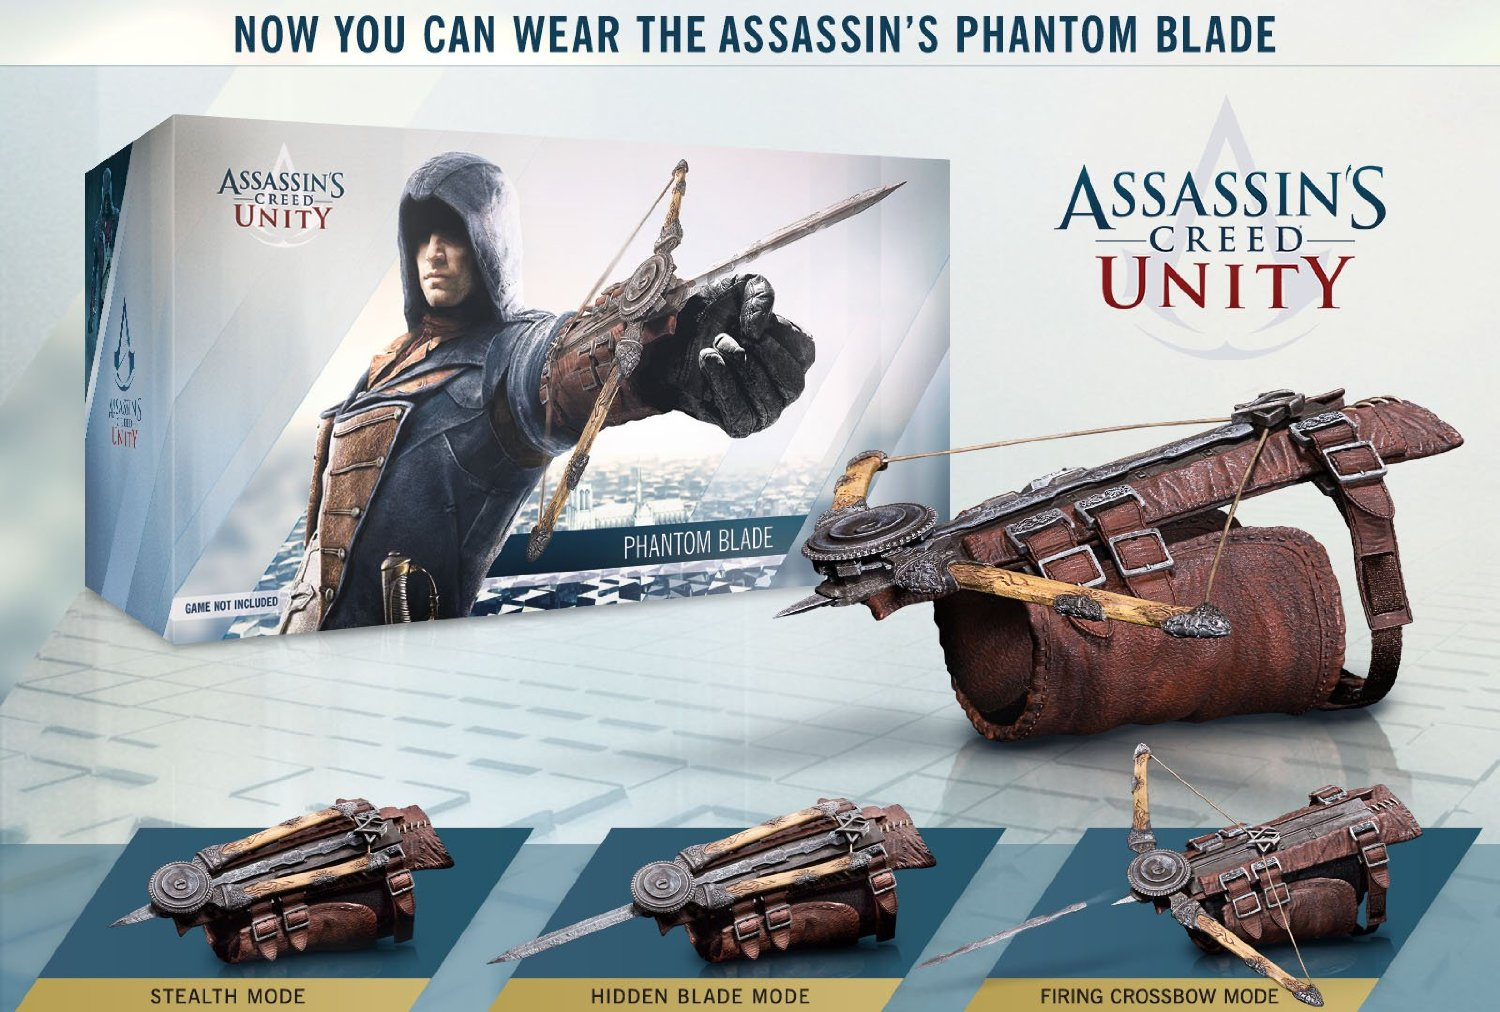 Assassins Creed 5 Unity Hidden Blade Action Figure Edward Kenway Cosplay Costume New in Retail Box hot new 1pcs assassins creed 4 four black flag pirate hidden blade edward kenway cosplay new in box christmas gift toy chike8